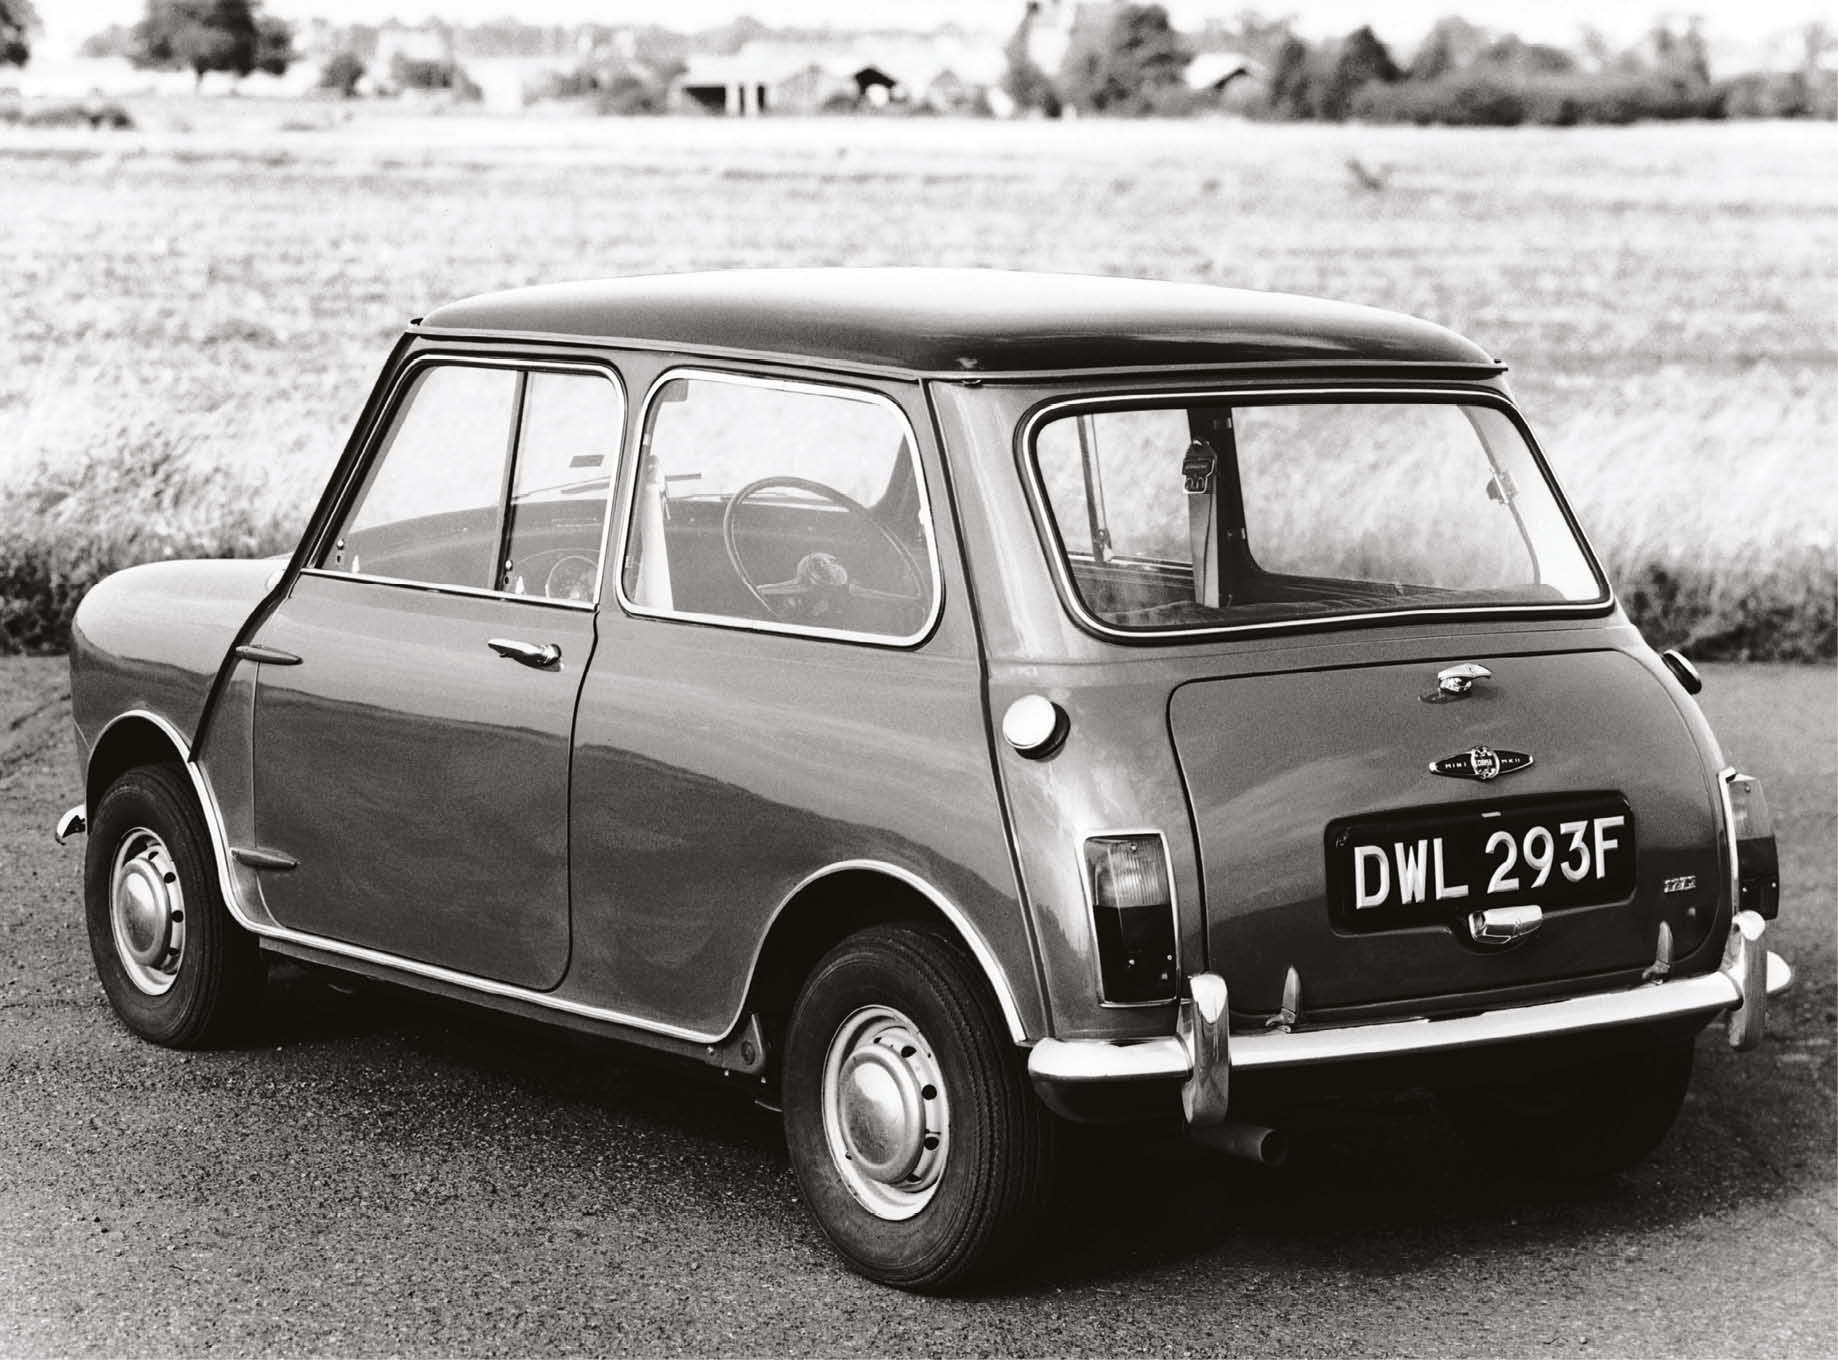 The Mini Cooper enjoyed a production run that spanned the 1960s, '70s, '80s and even '90s